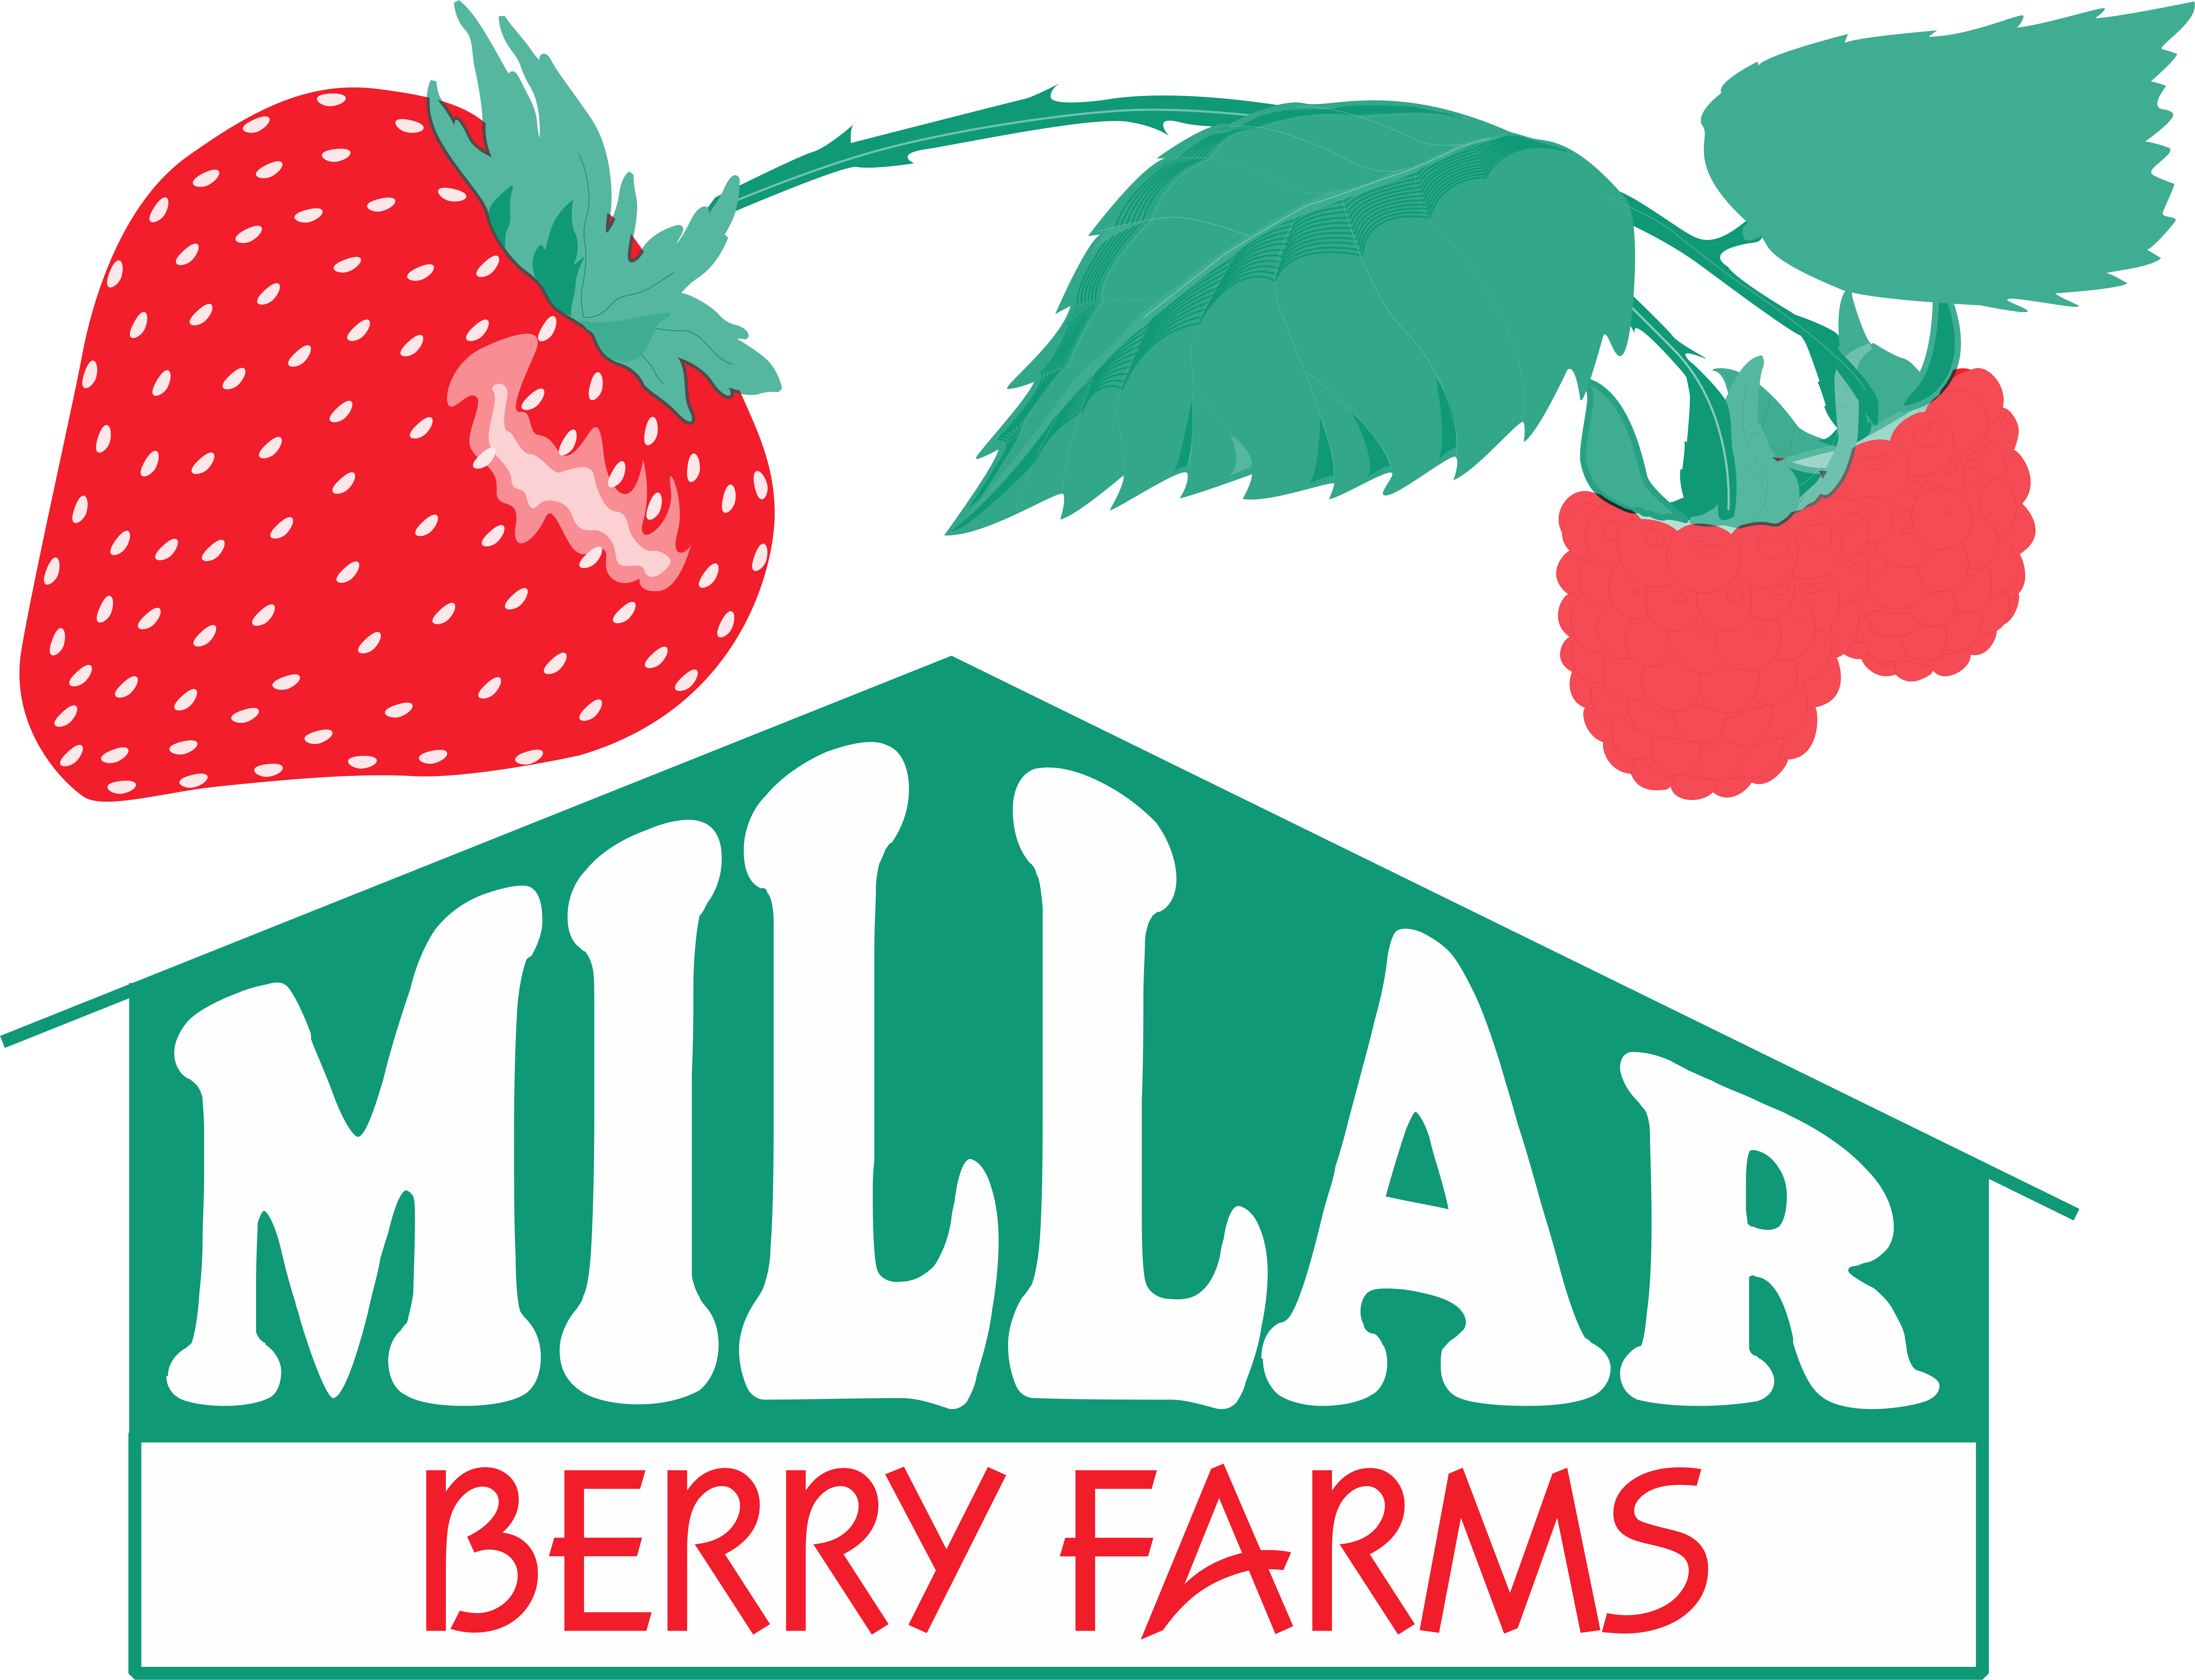 Millar berry farms . Farming clipart strawberry farm